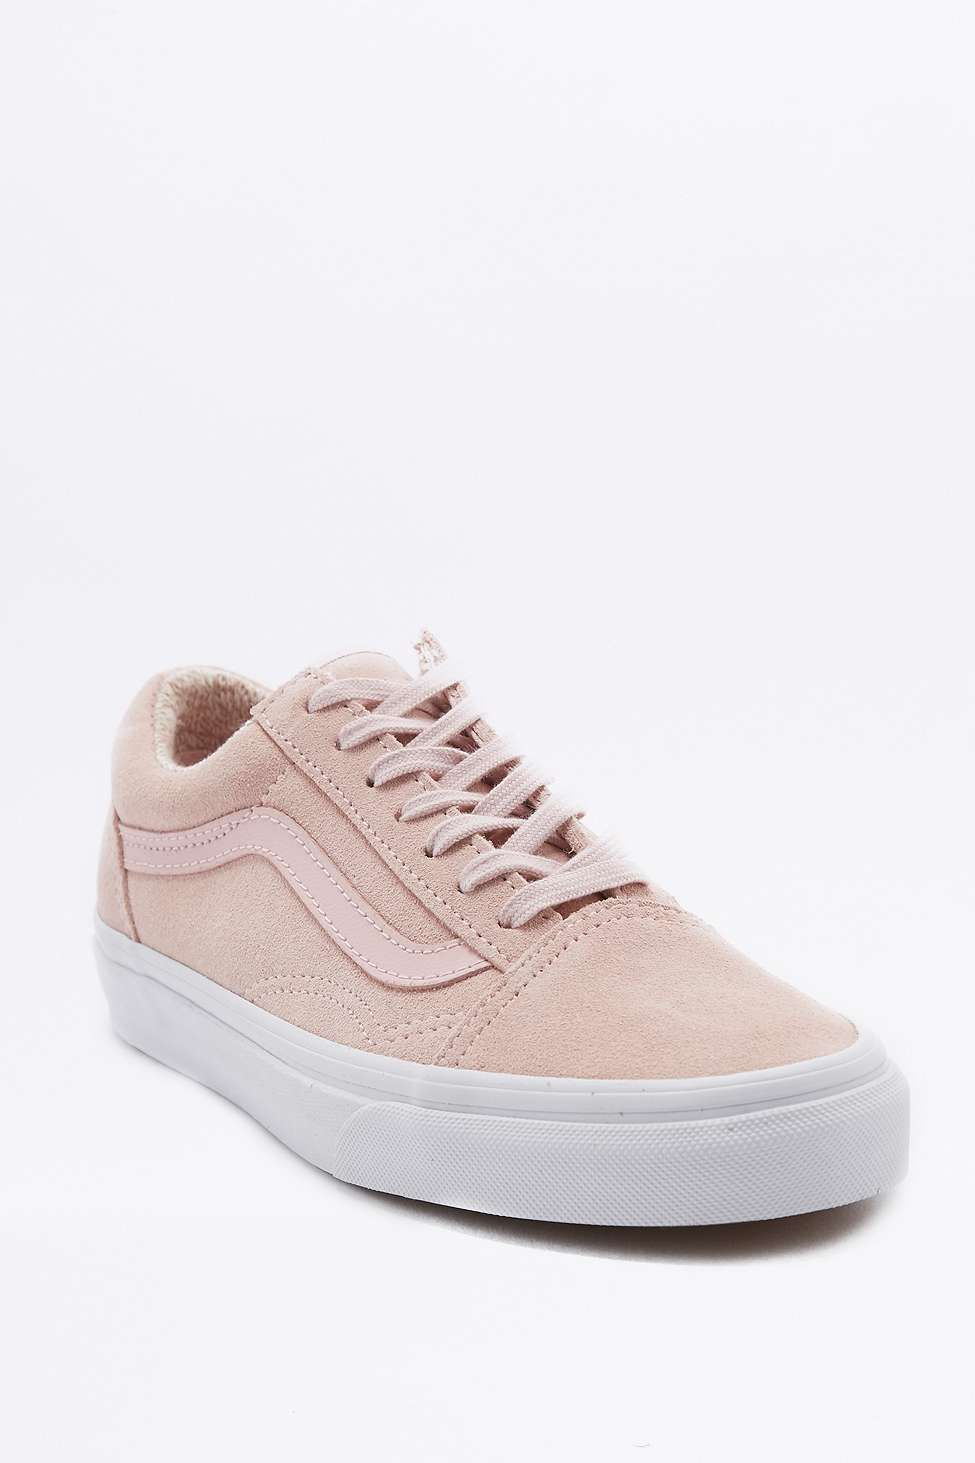 Vans - Baskets Old Skool en daim roses  5a4b92dd56d